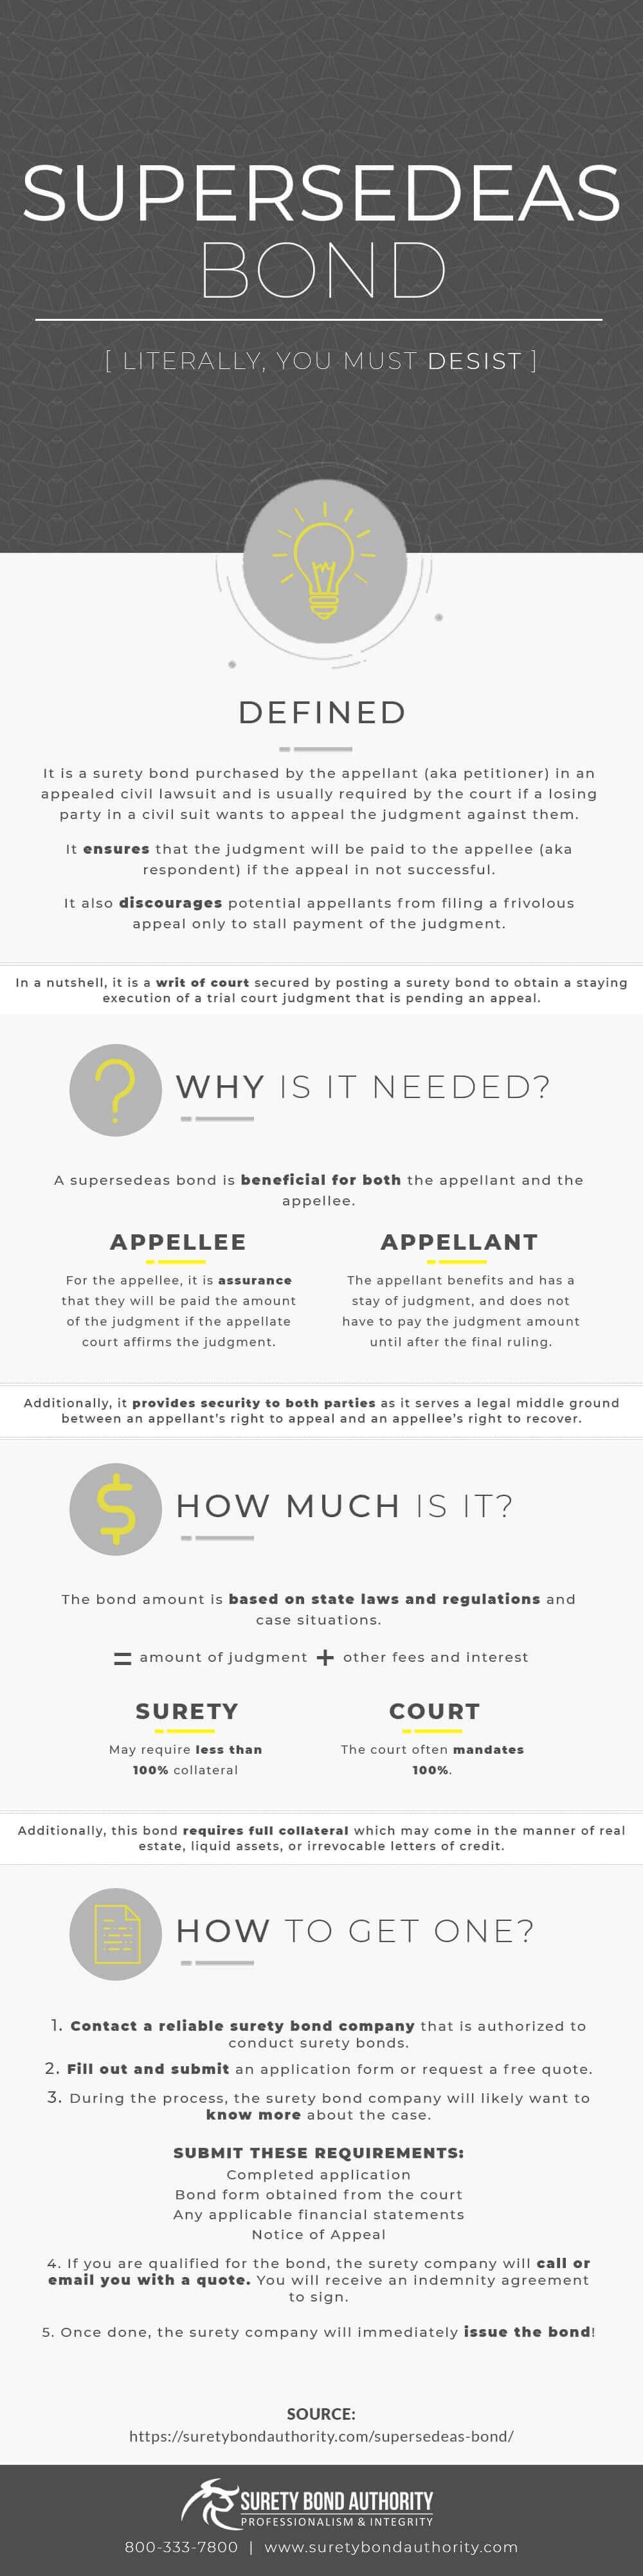 Supersedeas Surety Bond Infographic